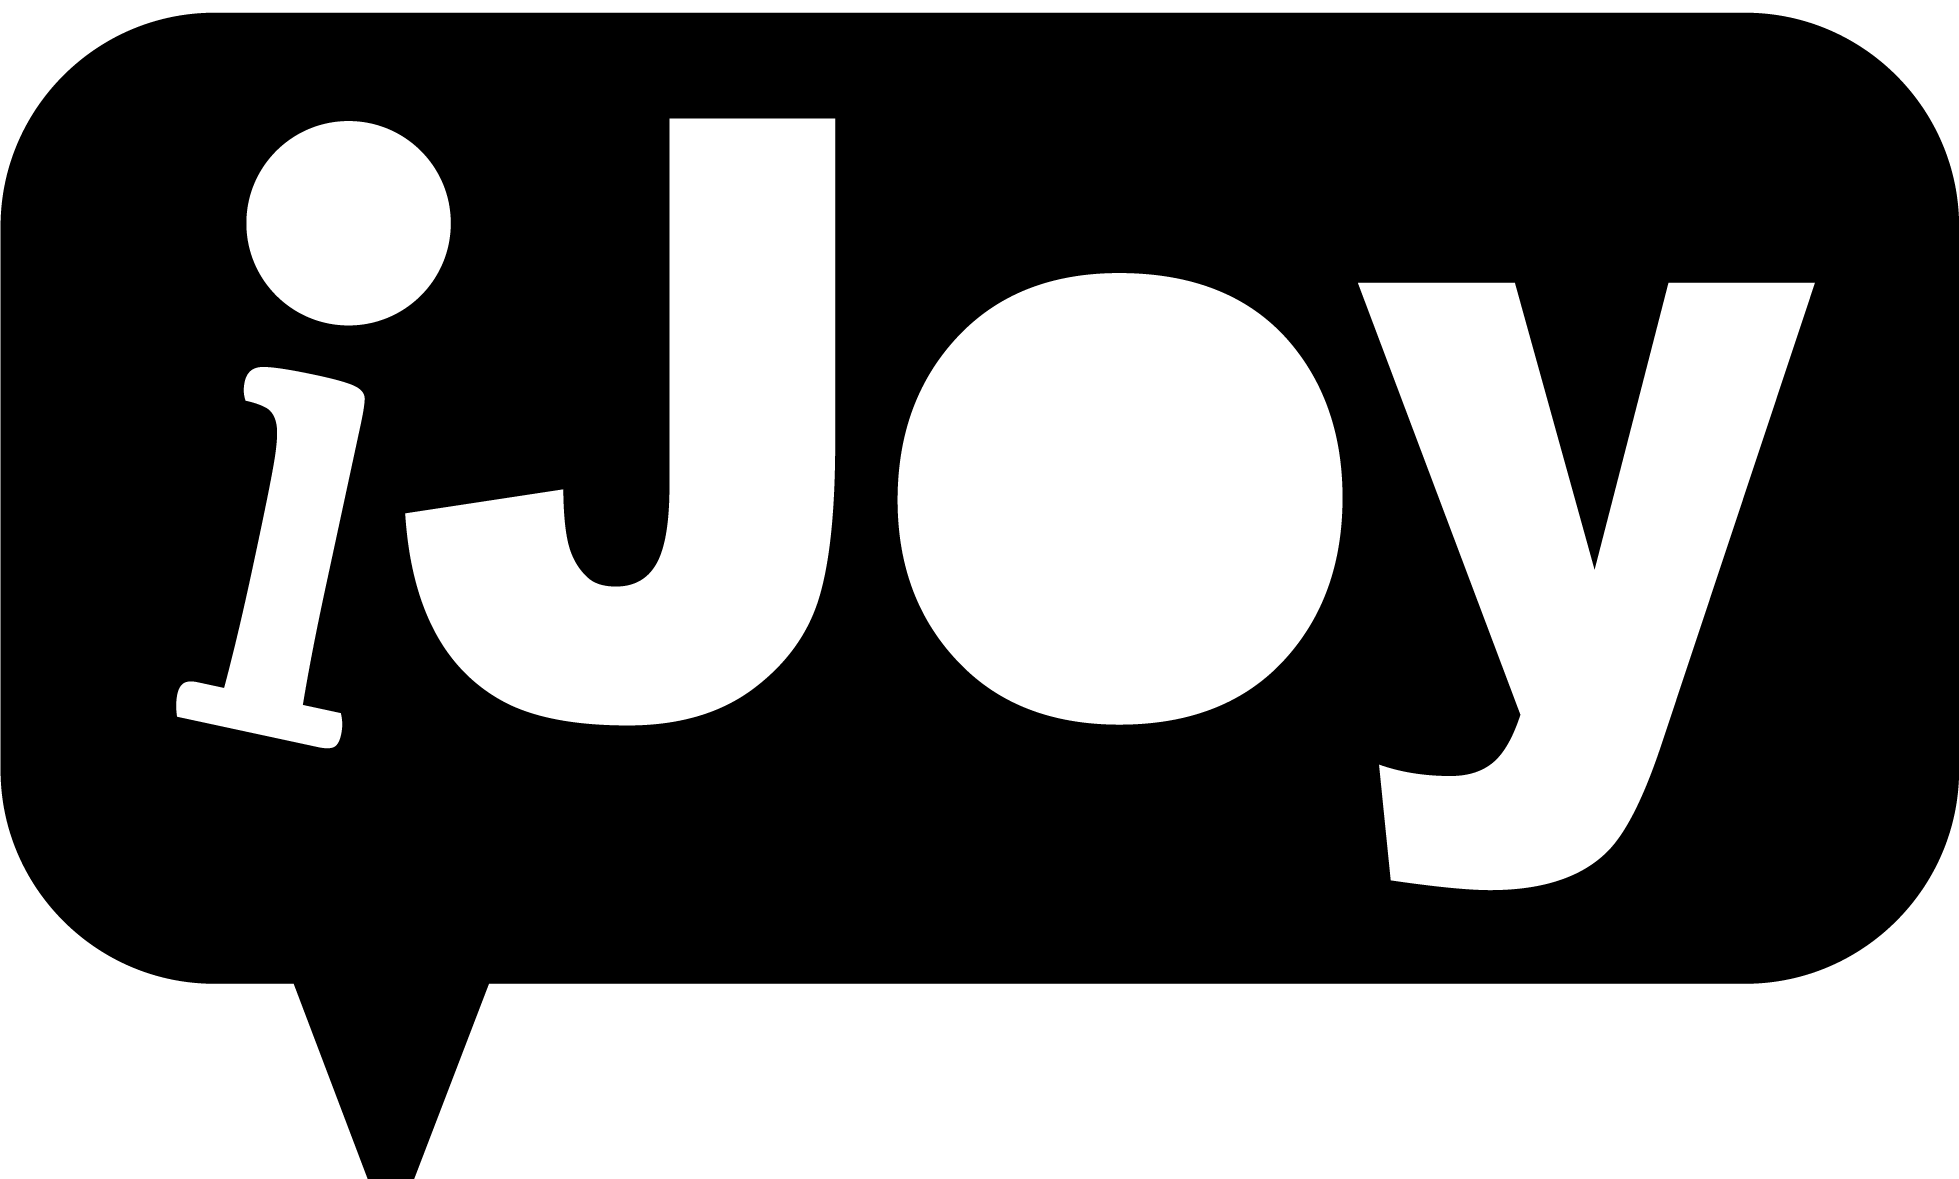 iJoy Global Foundation